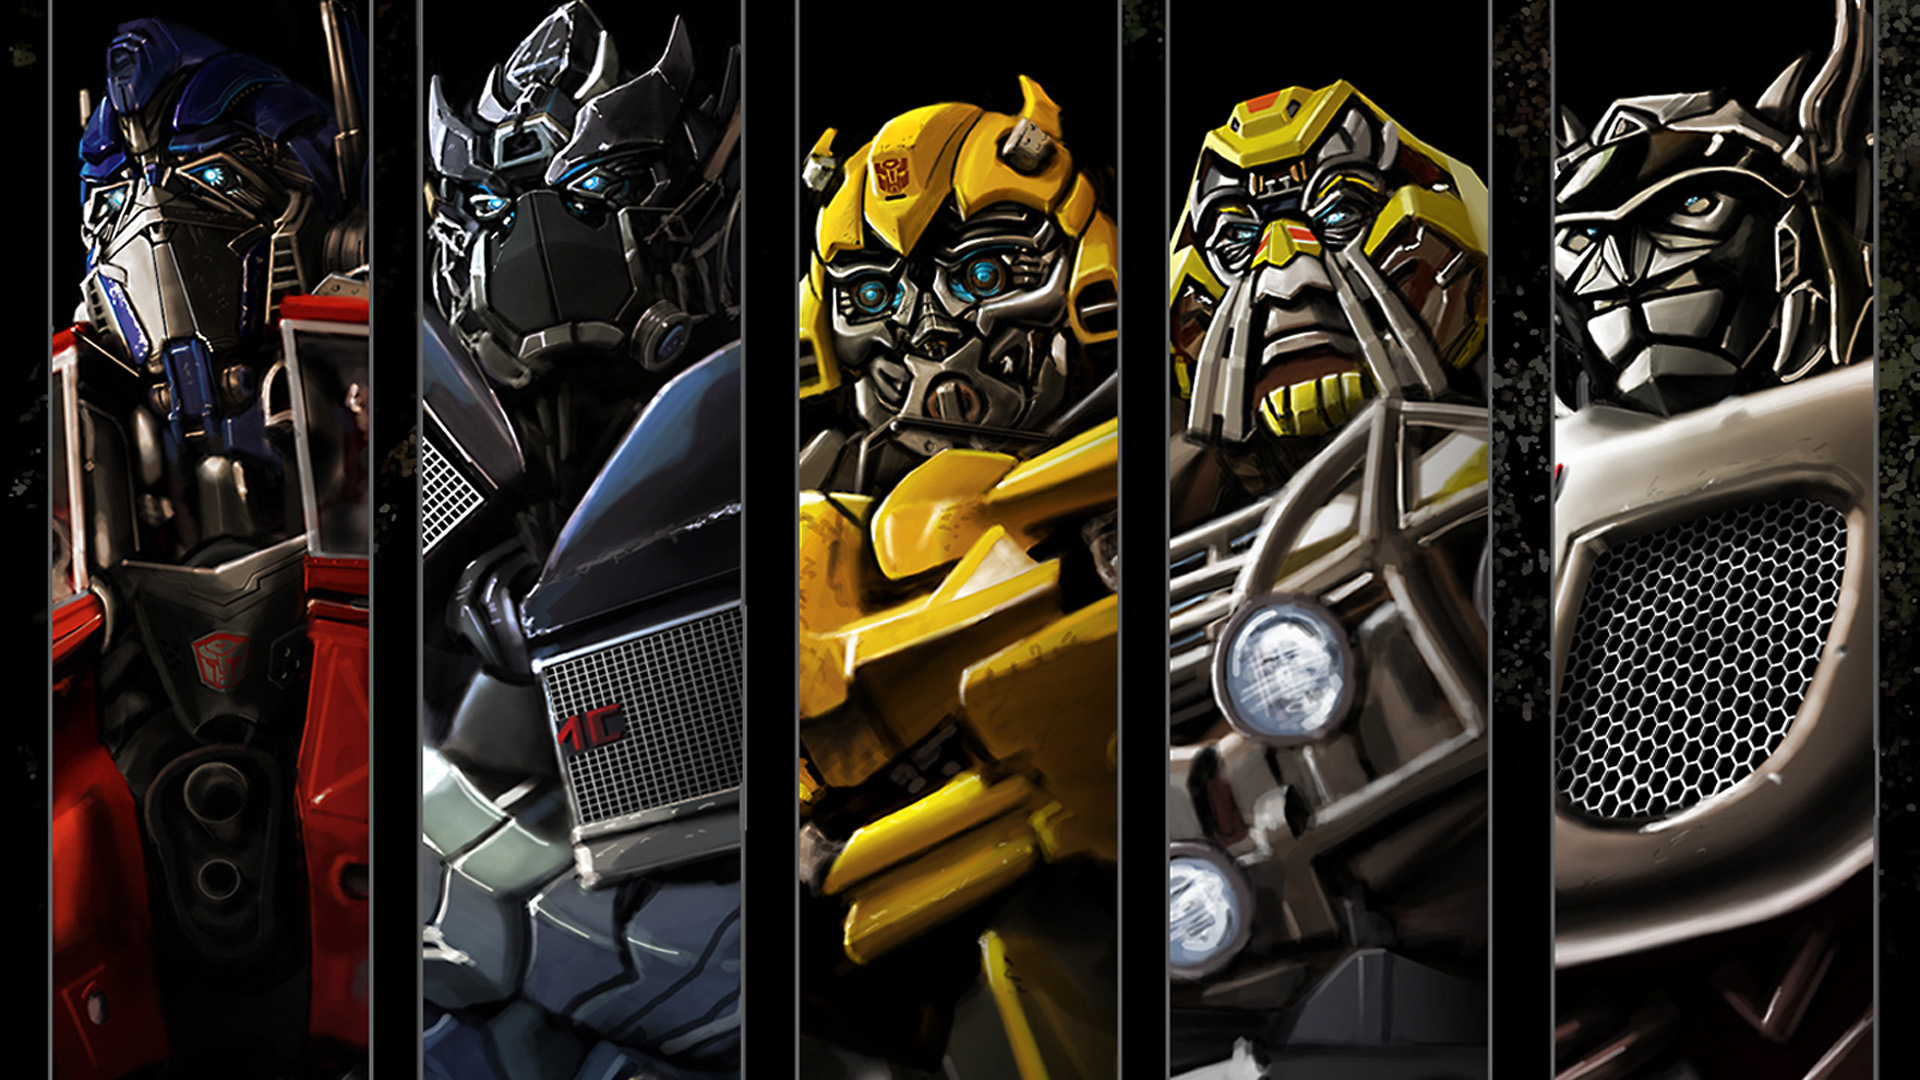 Transformers Hd Wallpaper High Definition High Quality